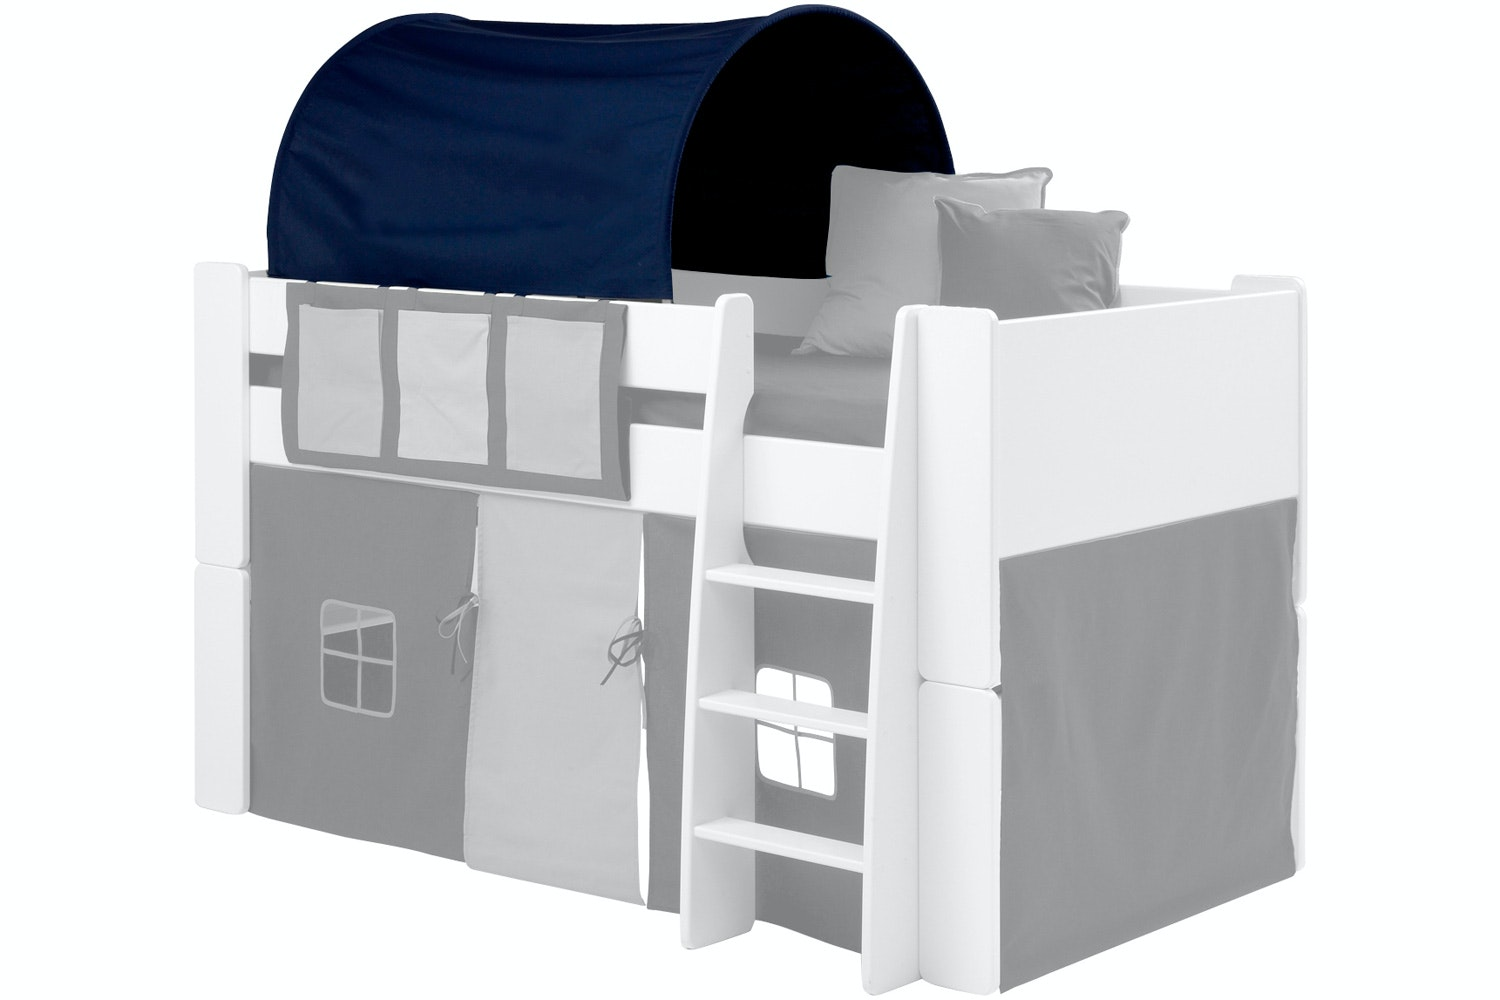 Fabric Tunnel for Midsleeper Bed Frame